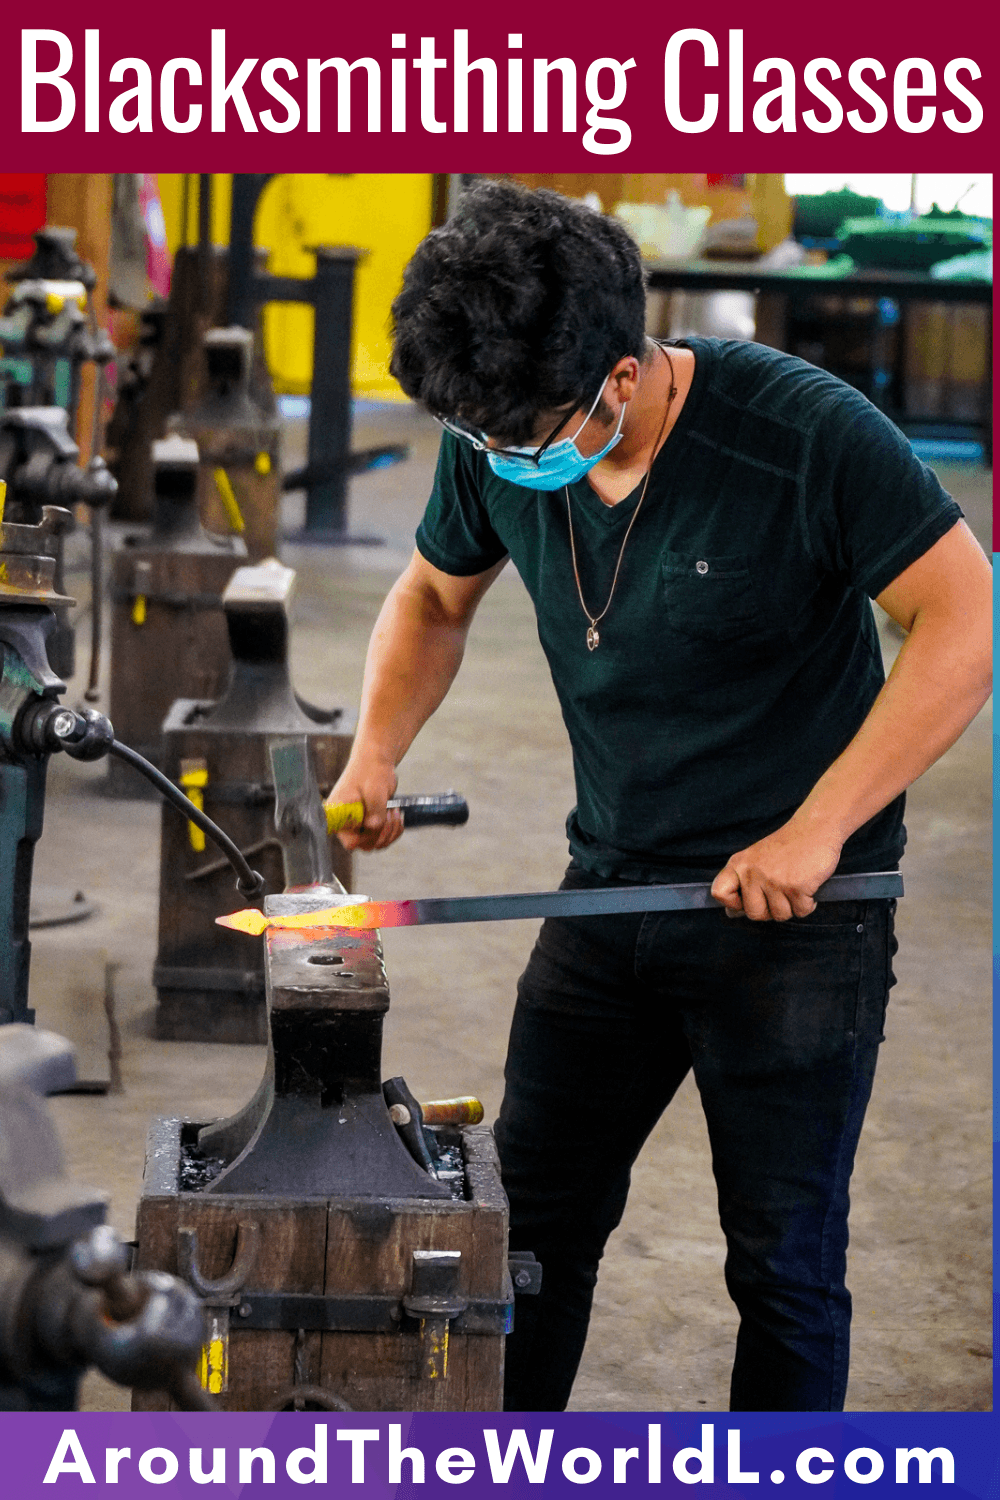 Blacksmithing classes and school